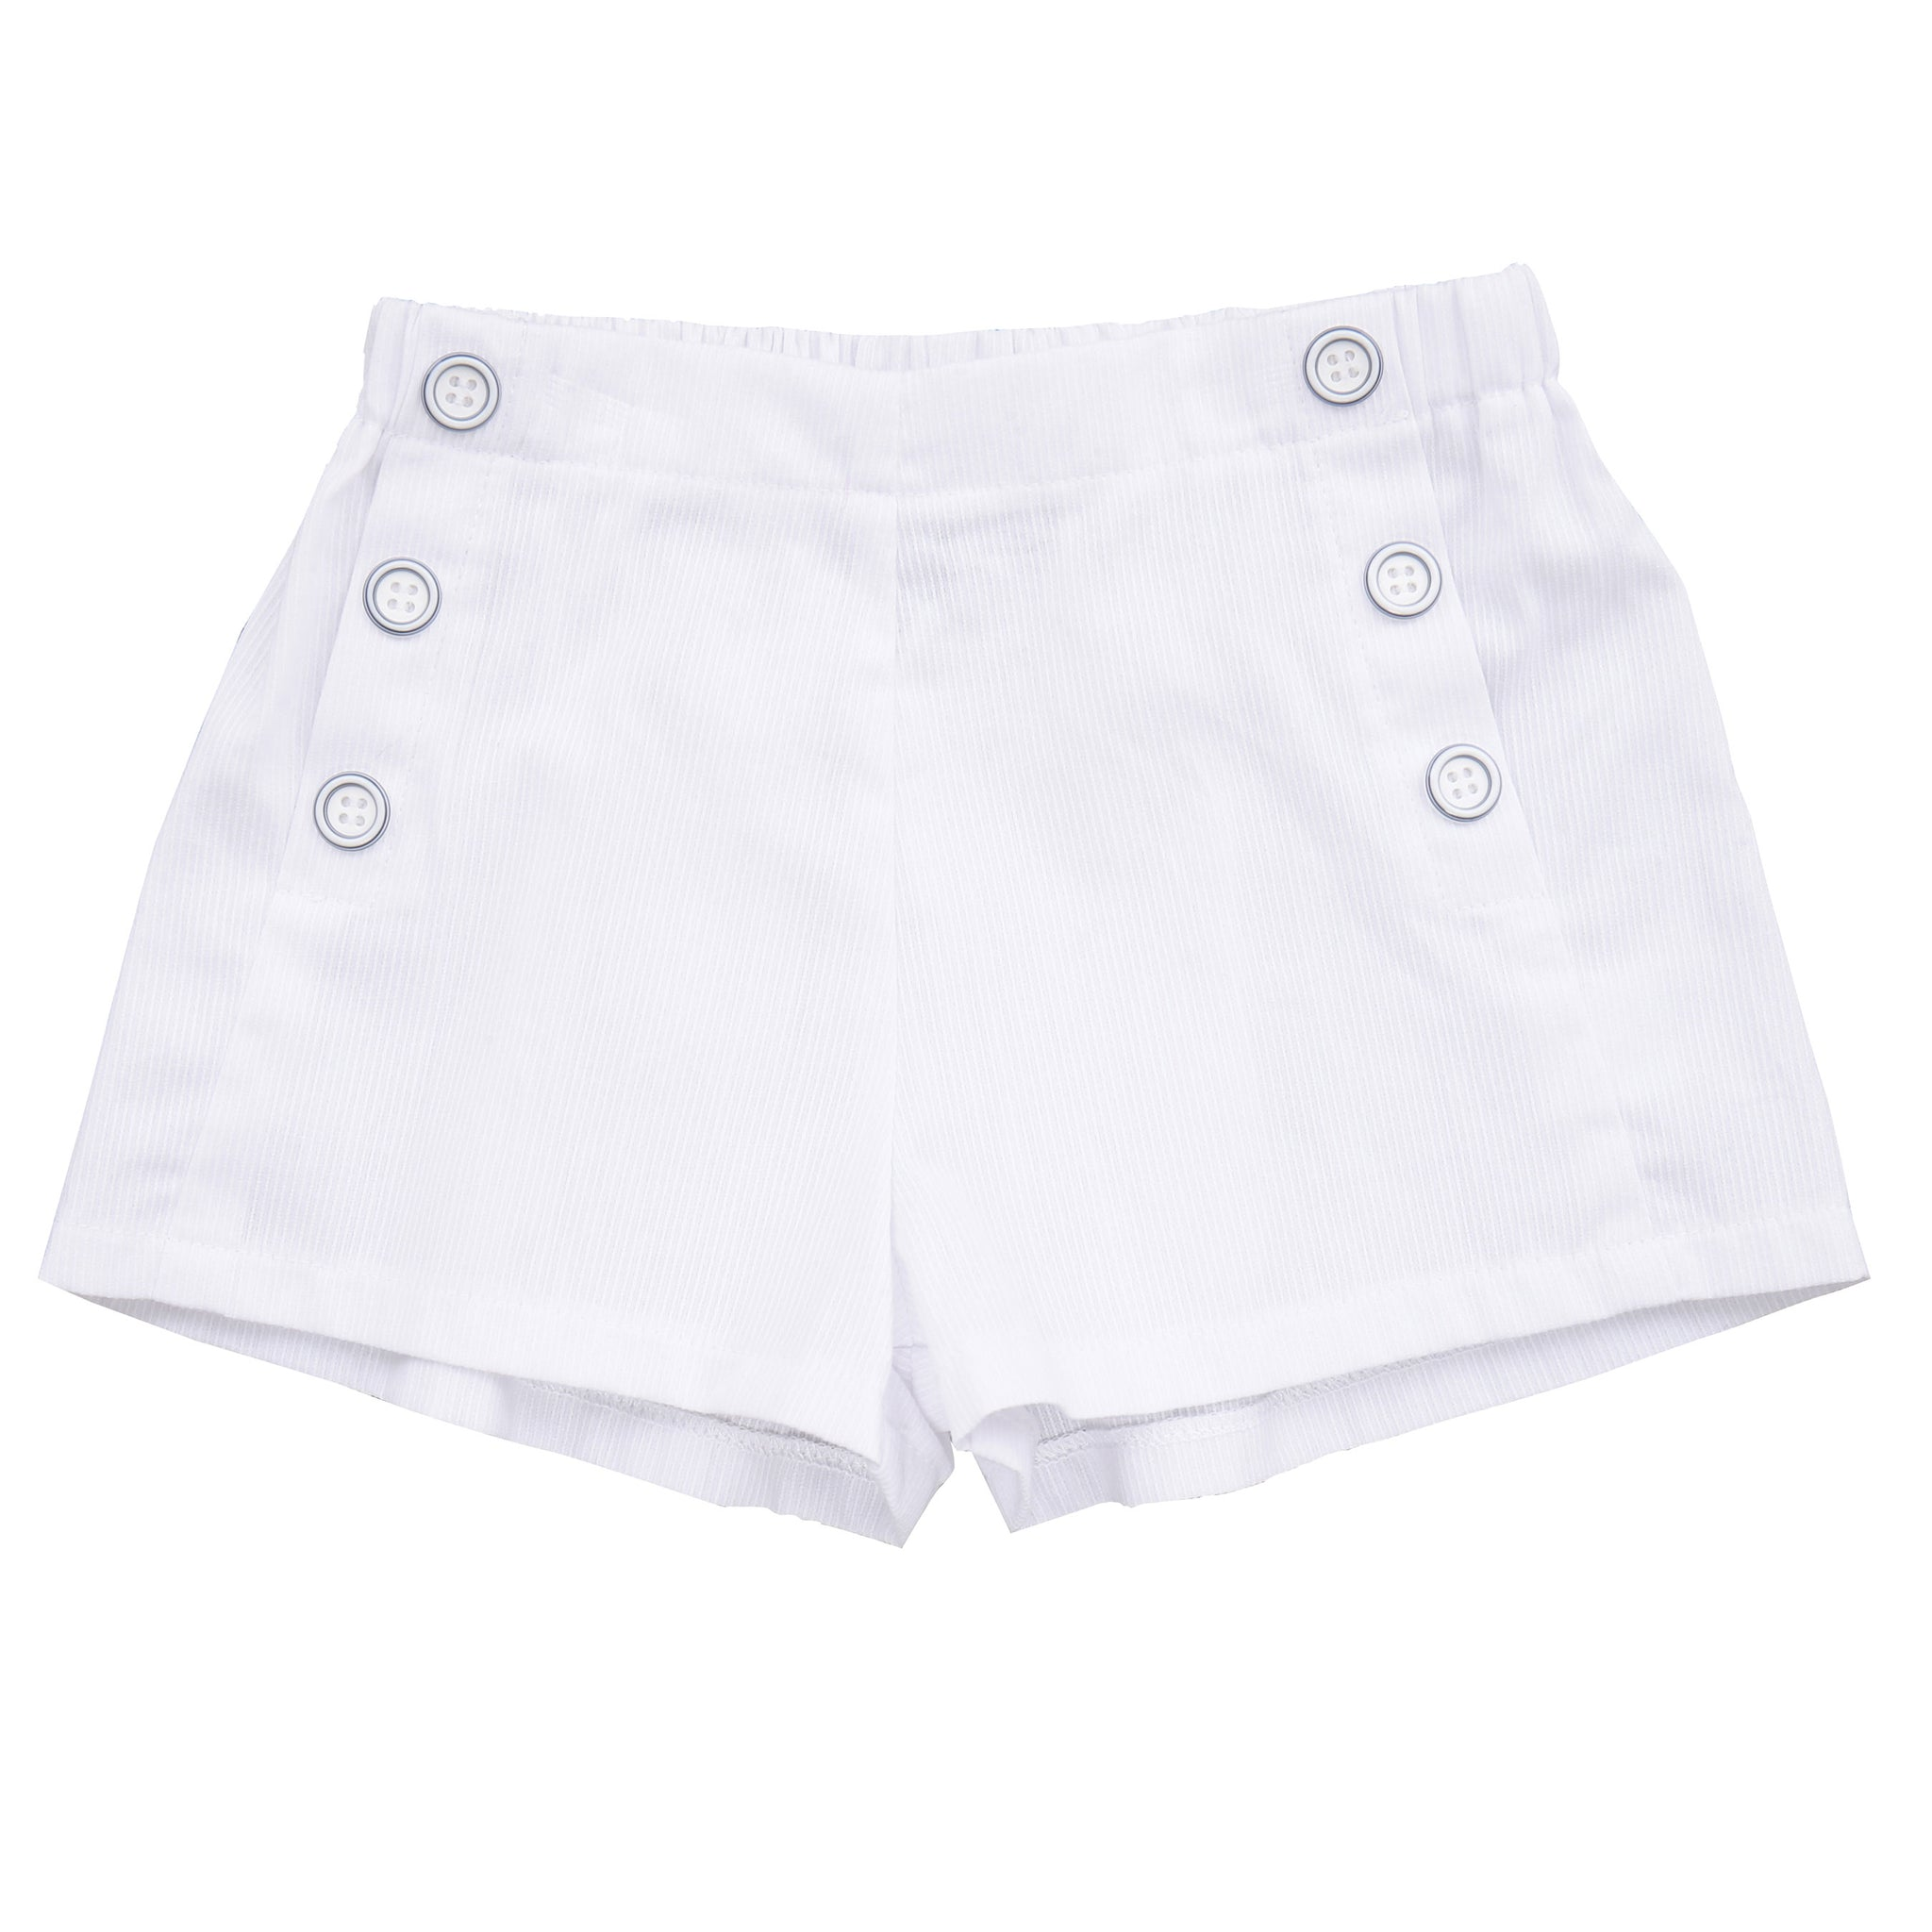 sailor button shorts white seersucker